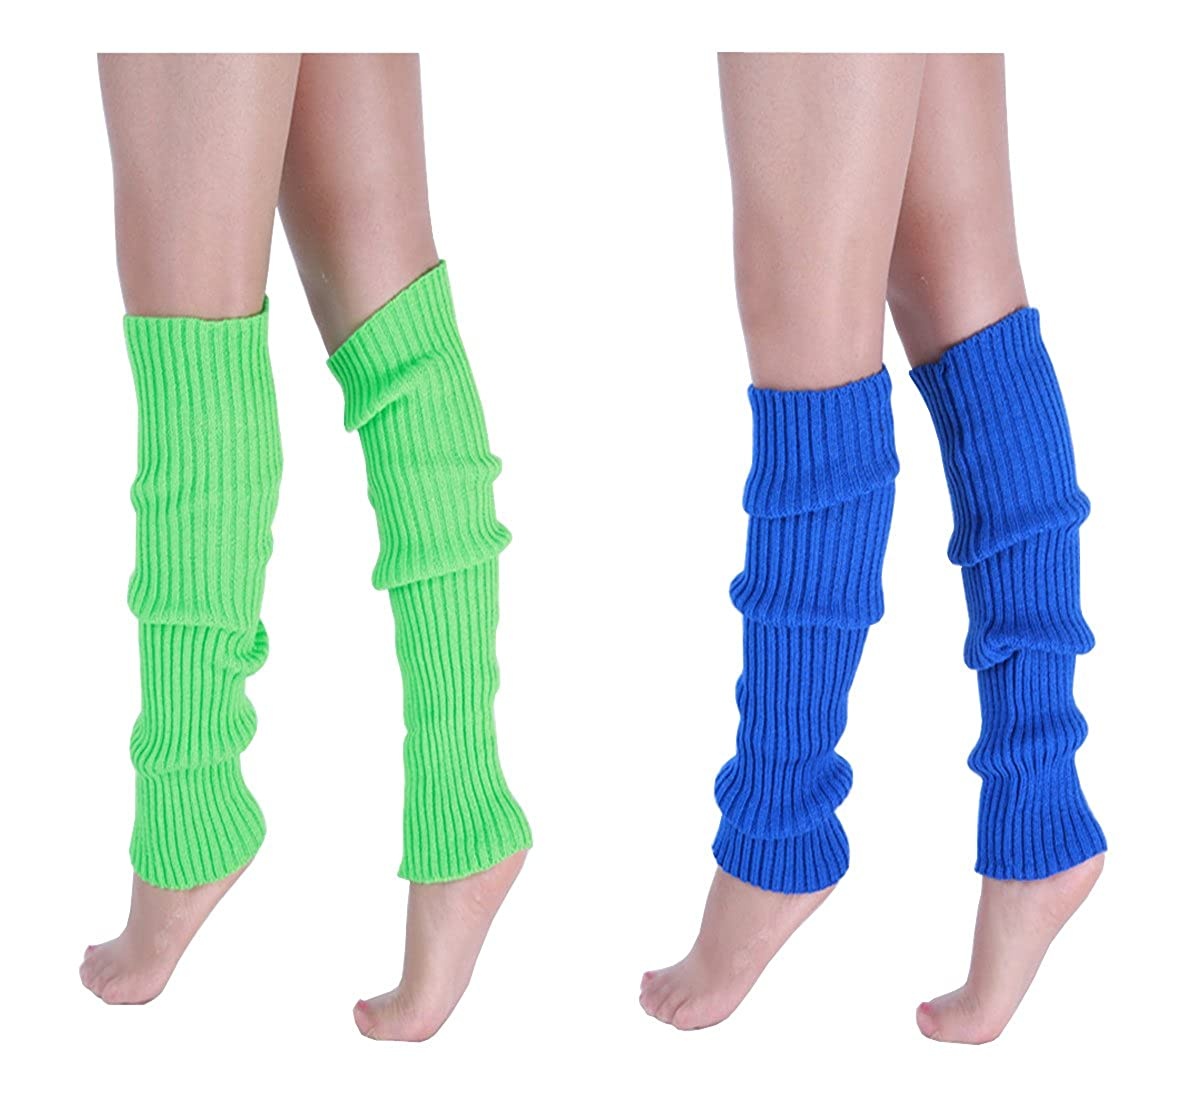 CHUNG Adult Women Juniors Knitted Leg Warmers 16.5 Neon Party Accessory 2pk Blue+Green YHJ-80s-2pk-BlueGreen